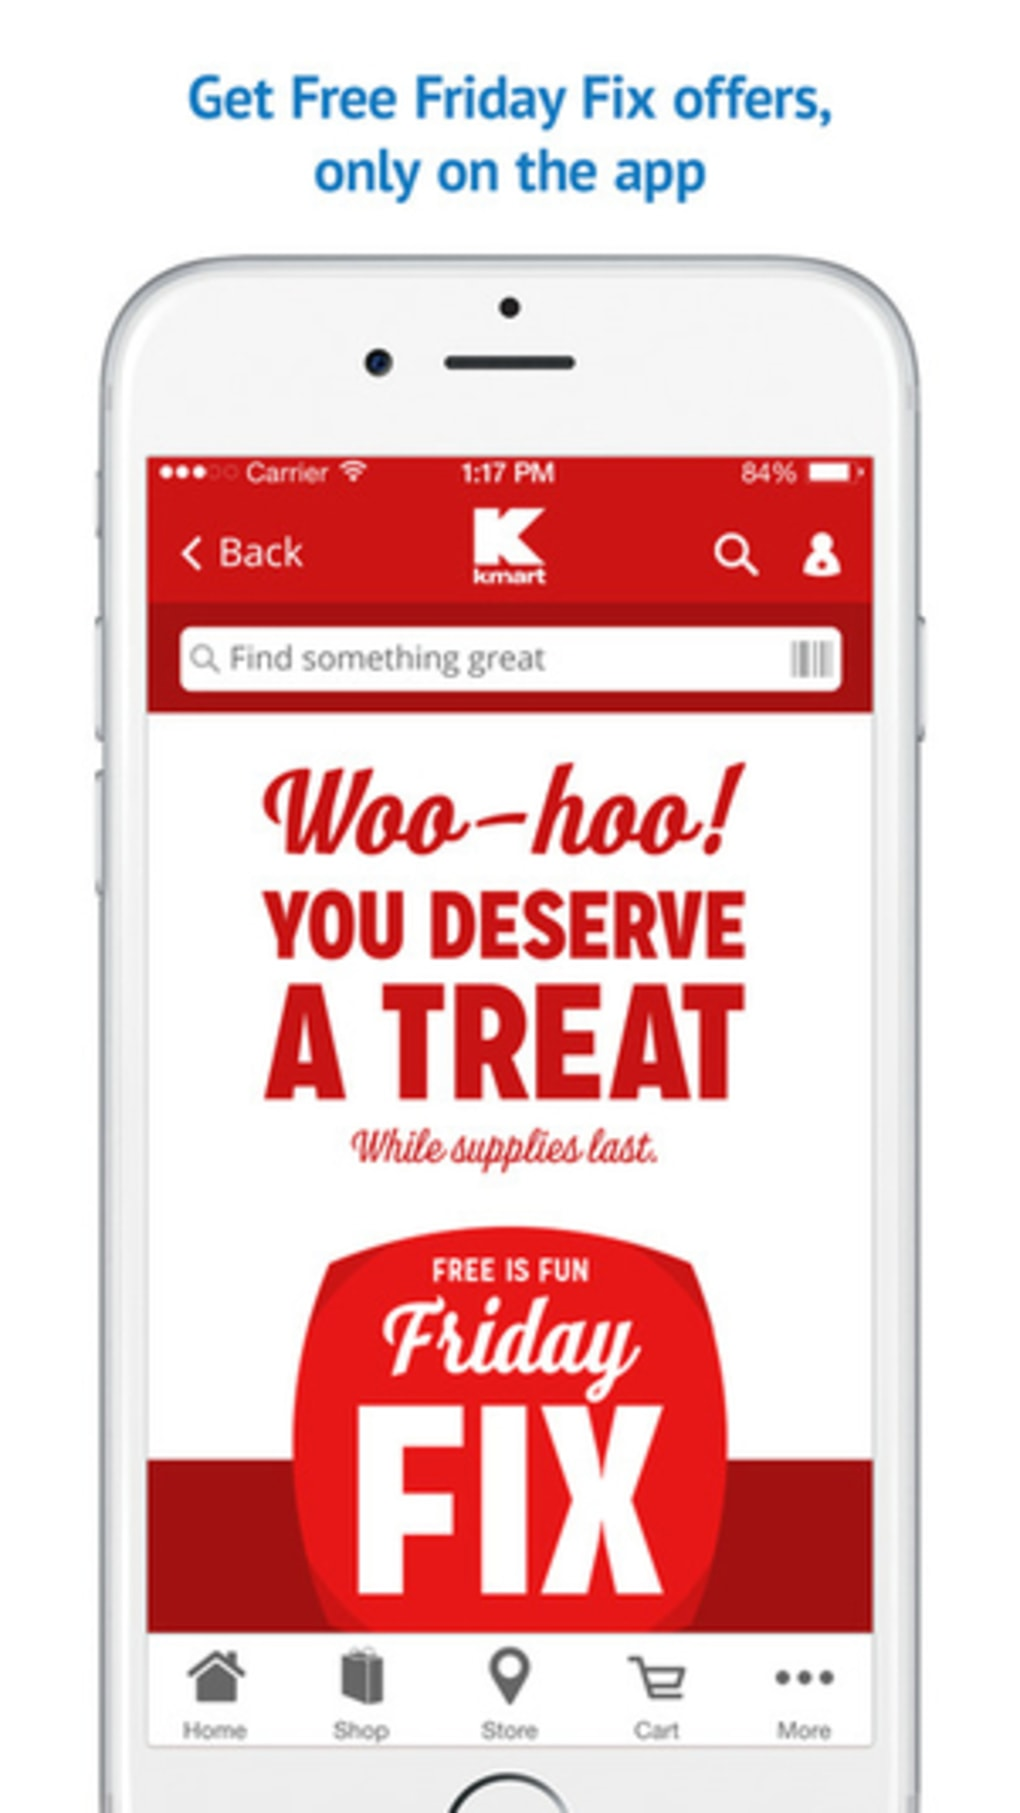 Kmart – Download Now, Shop Online & Pick Up Today! for iPhone - Download